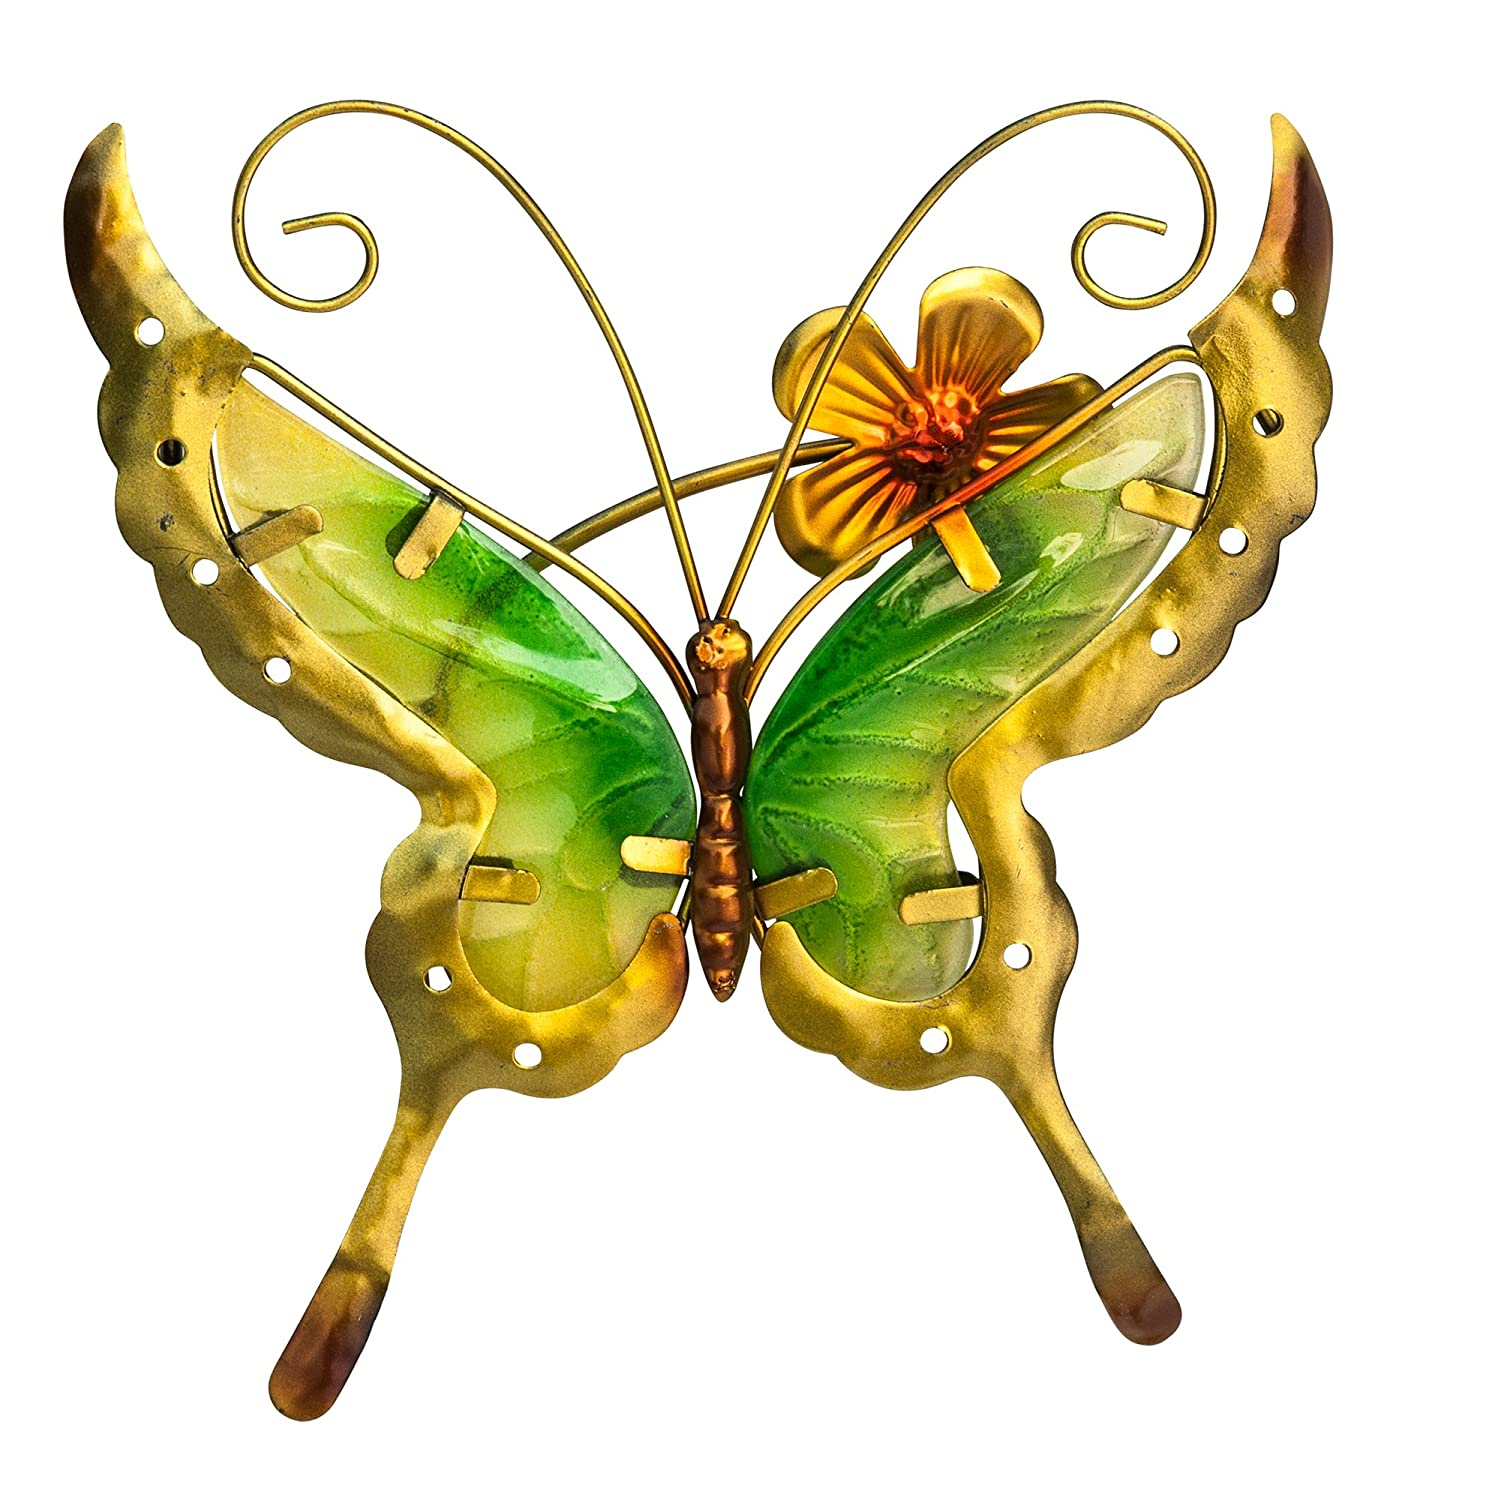 Amazon.com : Butterfly Wind Chime - Hanging Glass Windchime is the ...